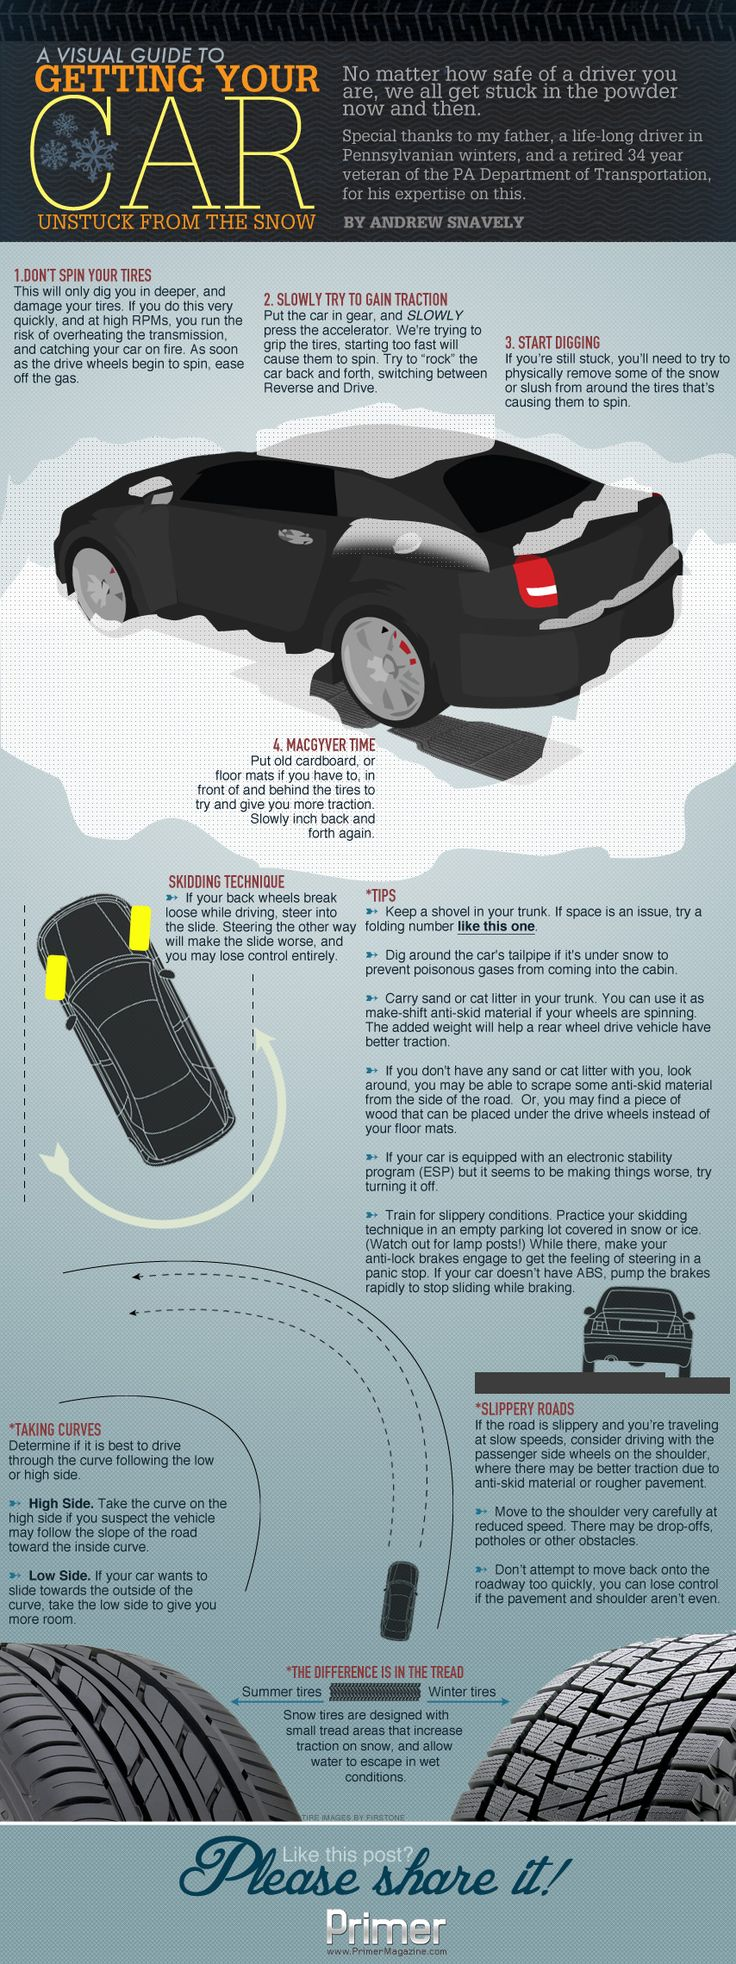 I visual guide for getting your car unstuck from the snow...I get stuck every year!